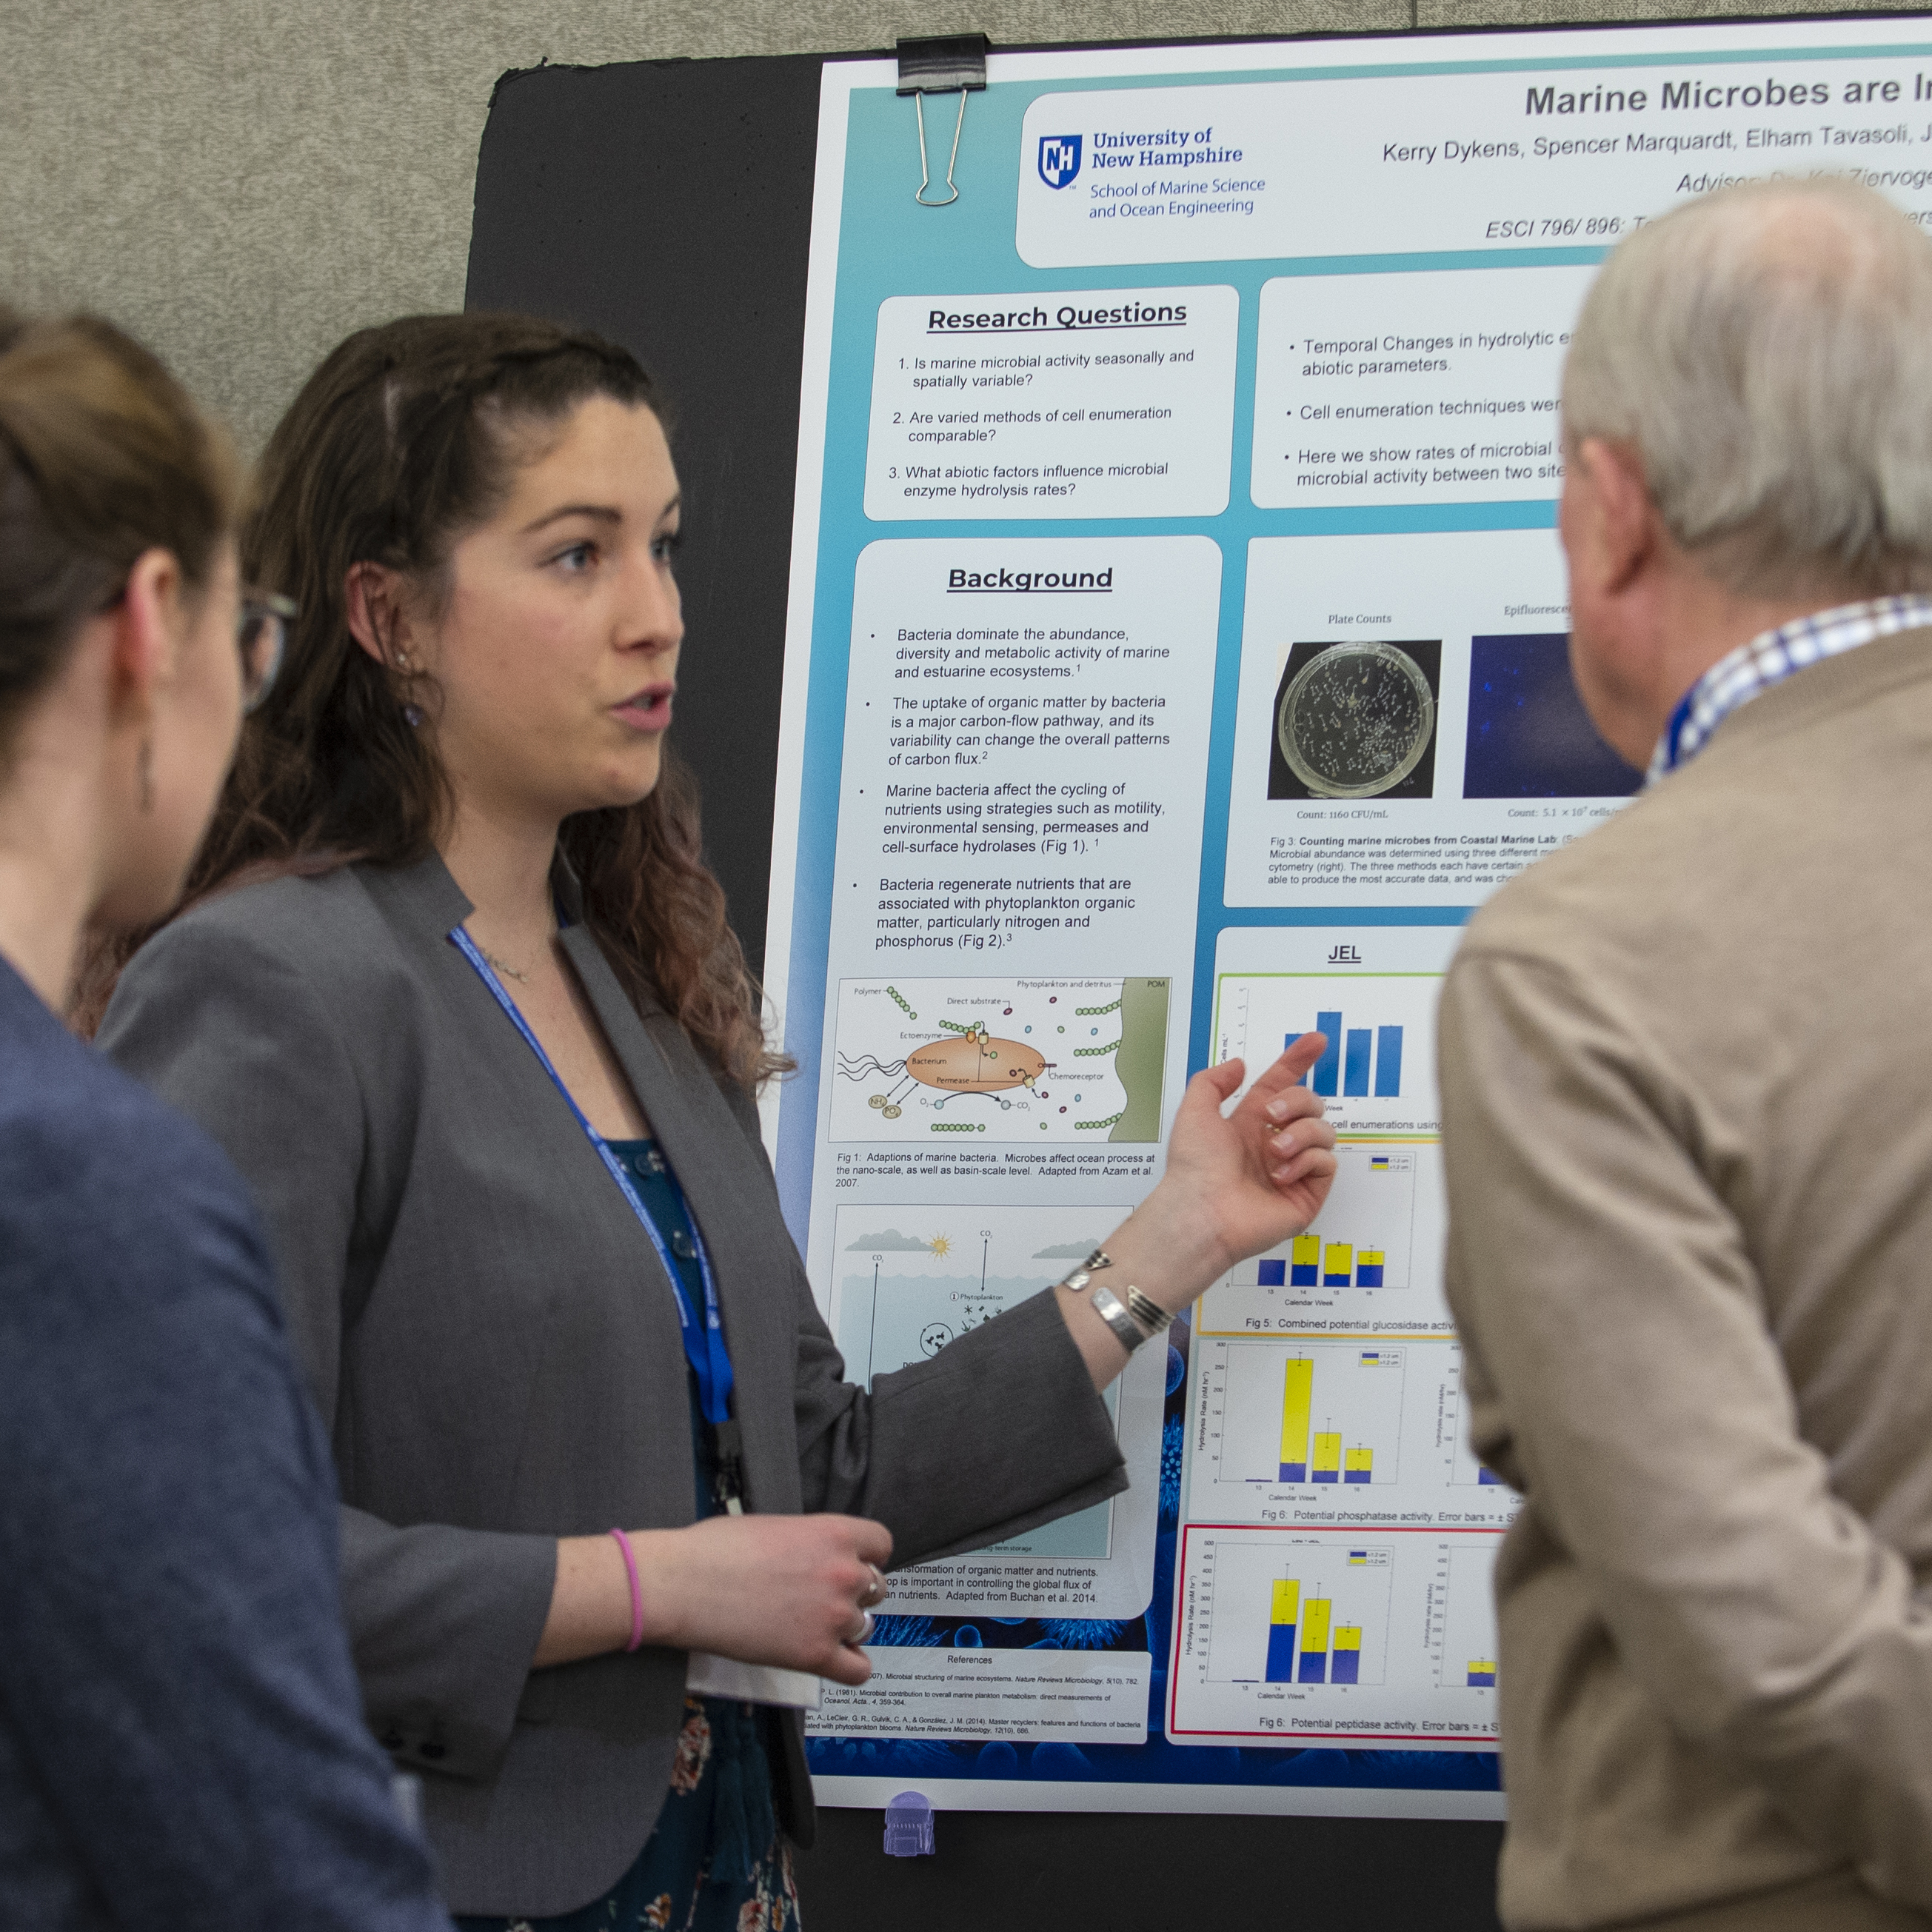 Poster Presentation at Research Conference